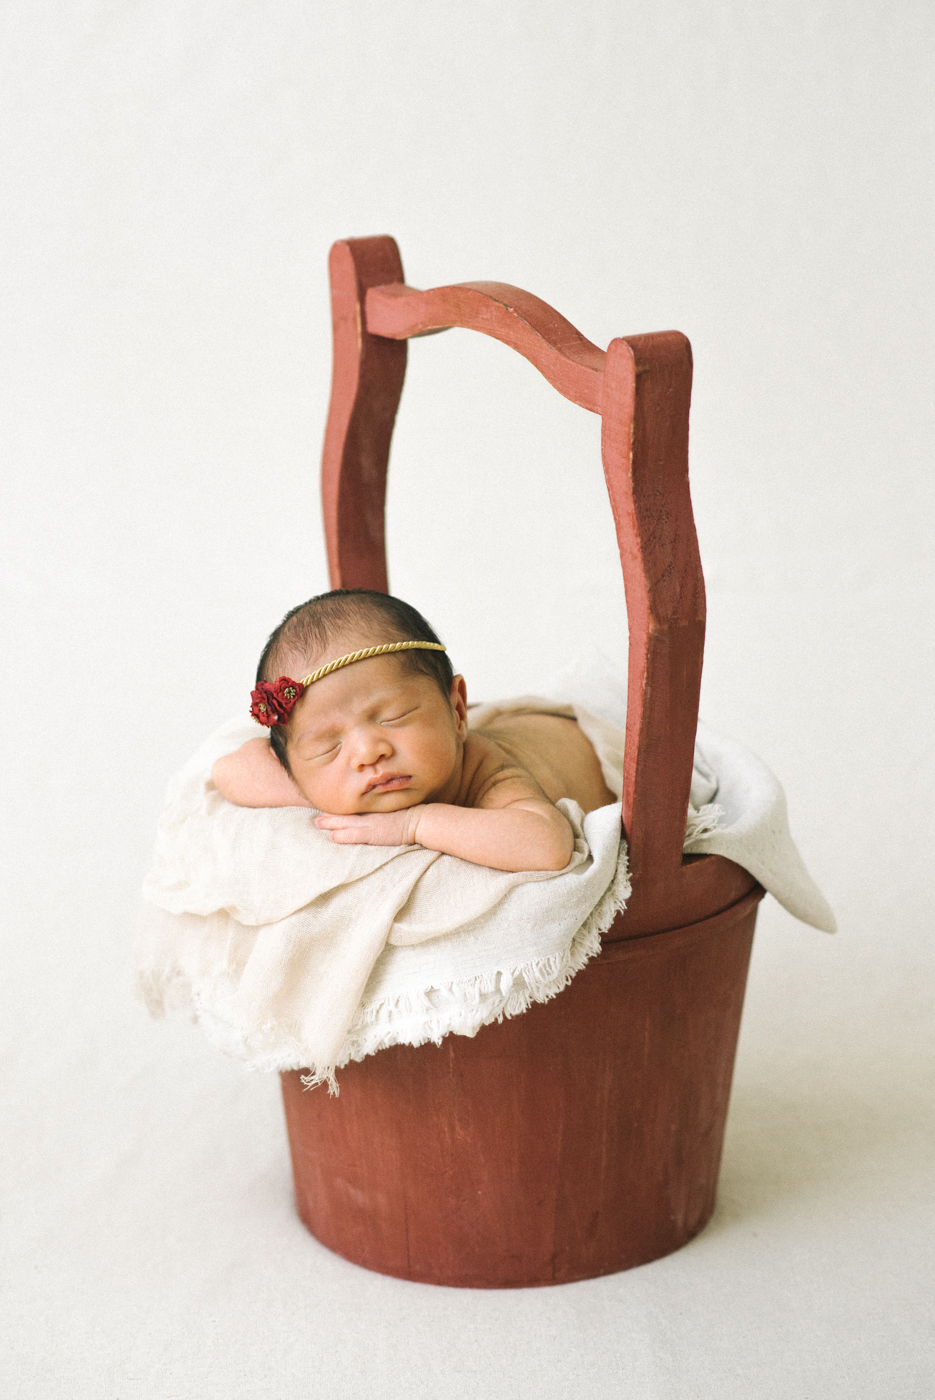 Best-Portland-Oregon-Newborn-photography-Sleeping-Baby-Maternity-Photographer-red-gold-flower-headband-basket-bucket-Shelley-Marie-Photography-3.jpg